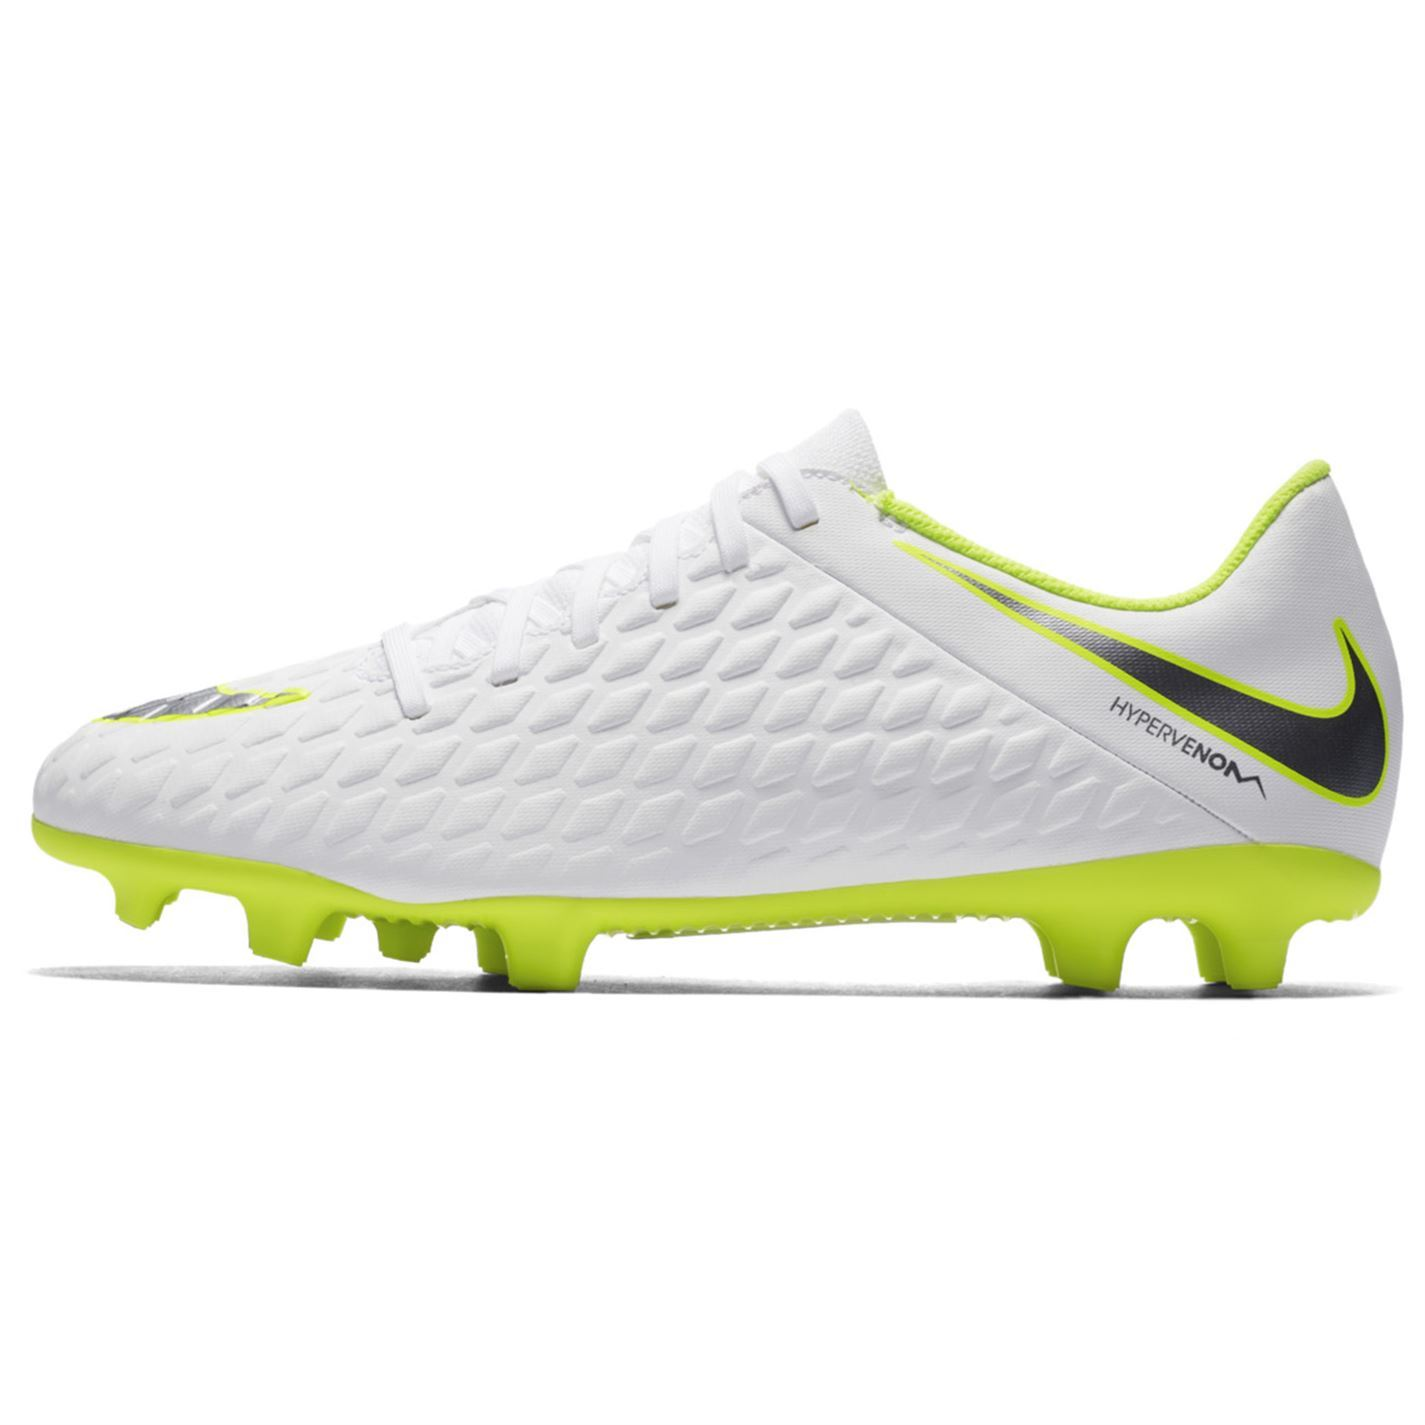 2a7422c9abc8 ... Nike Hypervenom Phantom Club Firm Ground Football Boots Mens White  Soccer Cleats ...